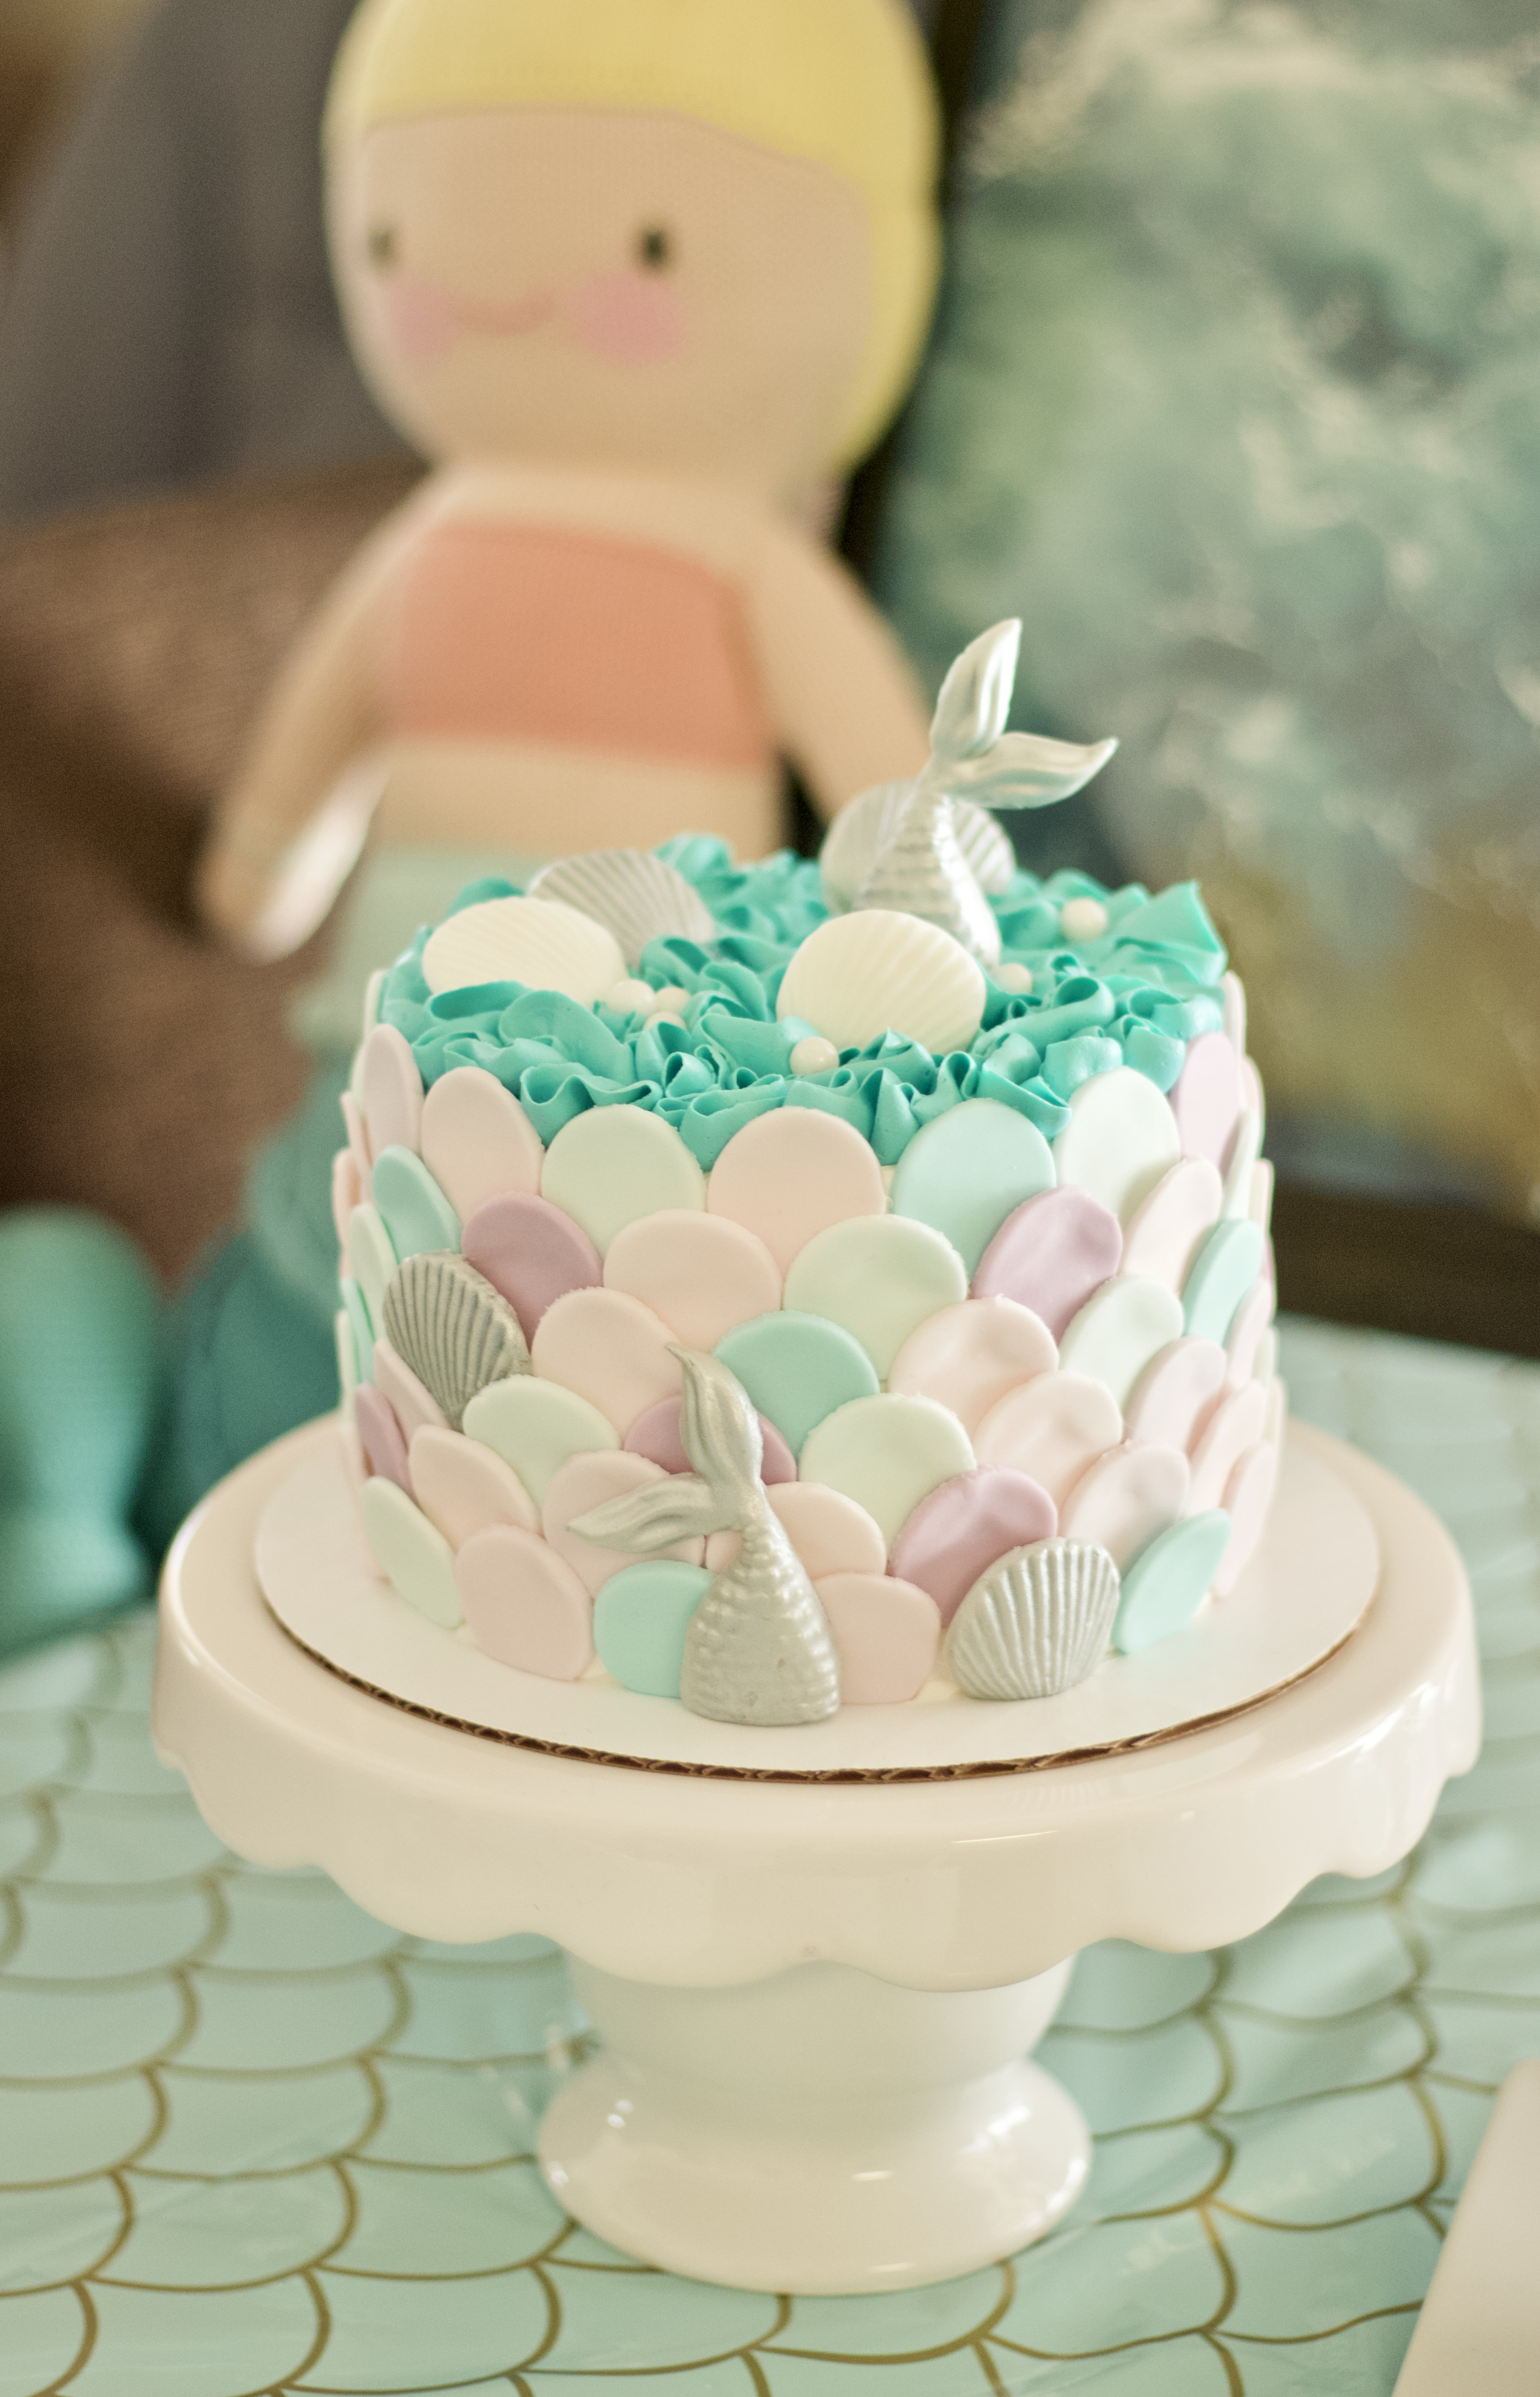 mermaid birthday cake for kids #birthdaycake #mermaidcake #mermaidparty #mermaidbirthdaycake